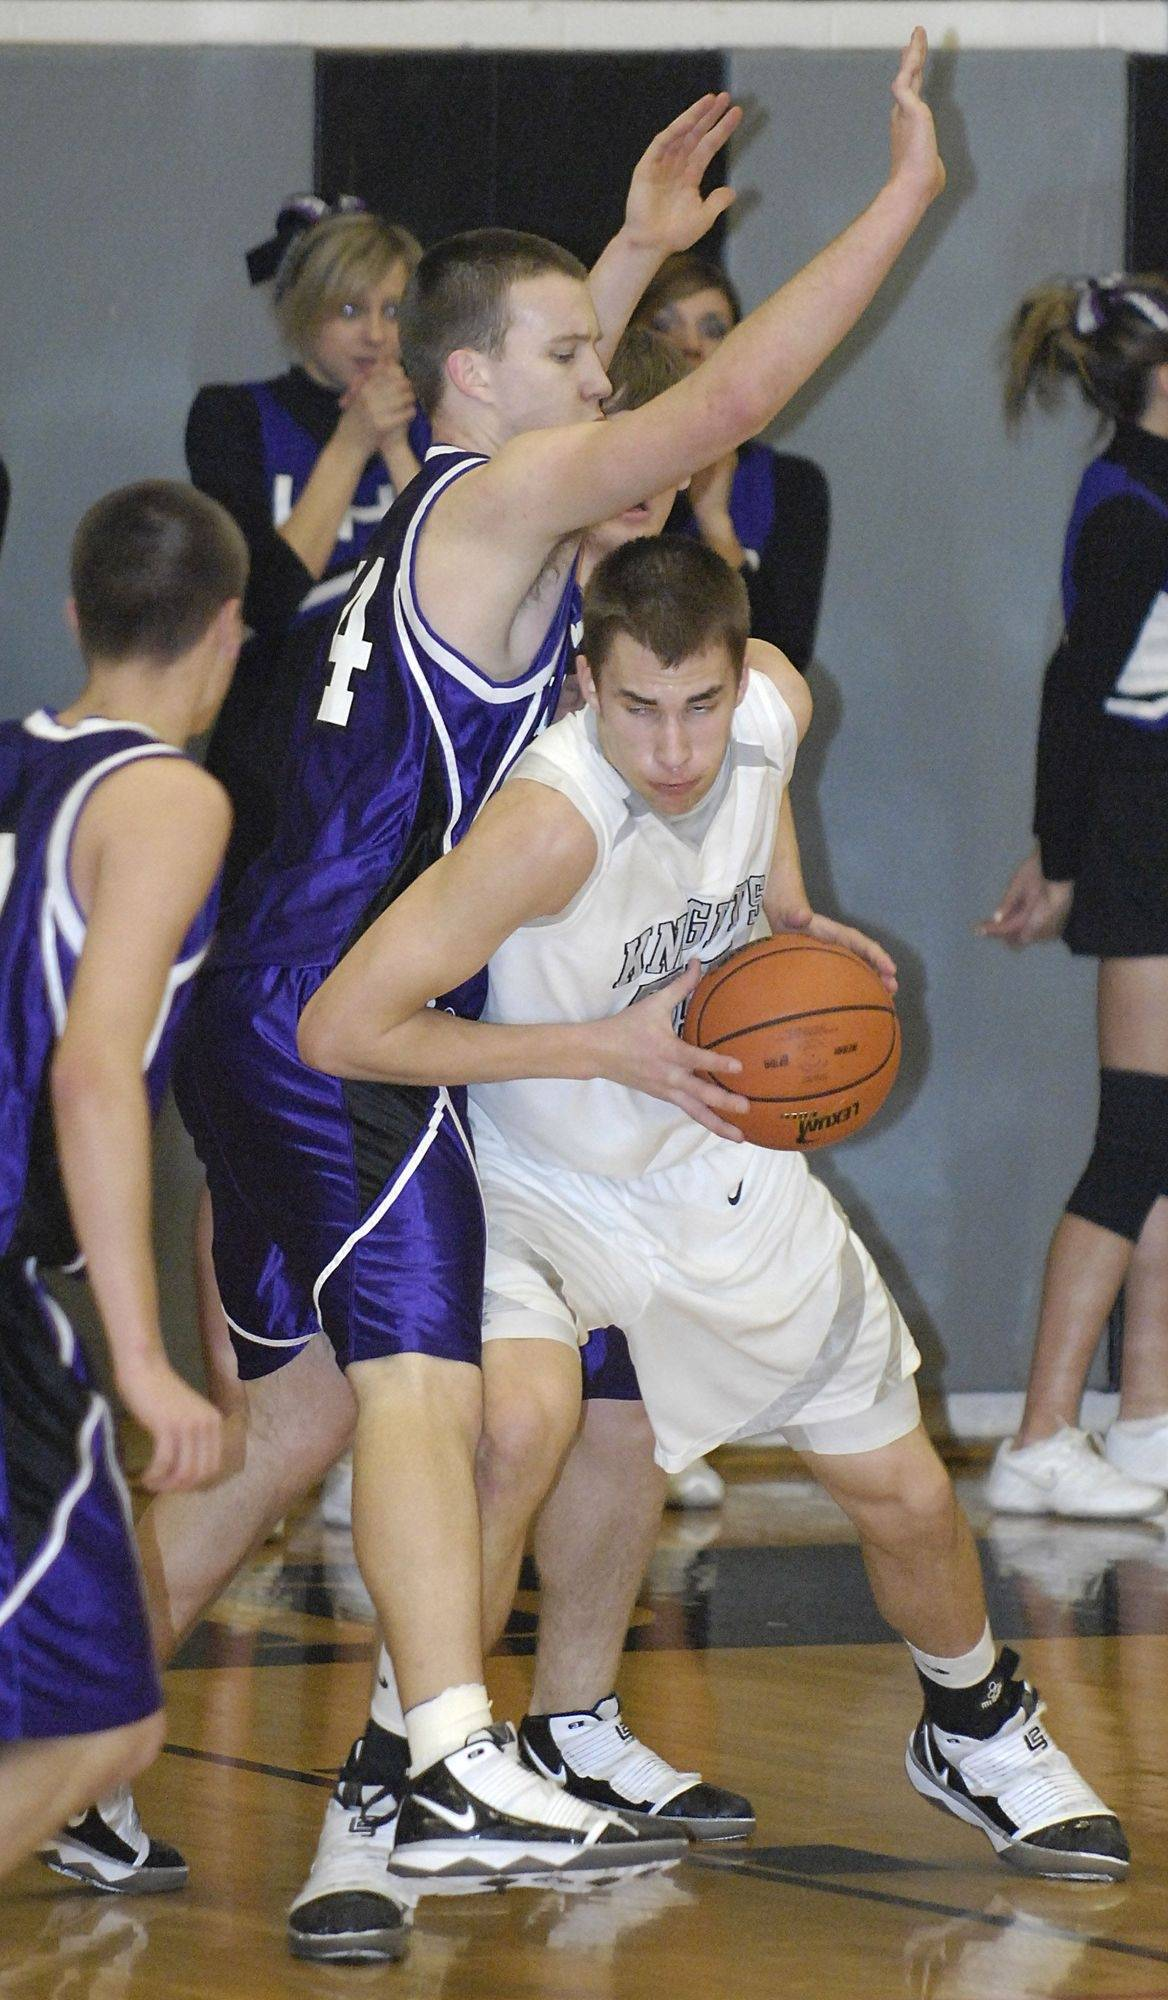 Kaneland's Dave Dudzinski ducks around Hampshire's Ryan Burke.